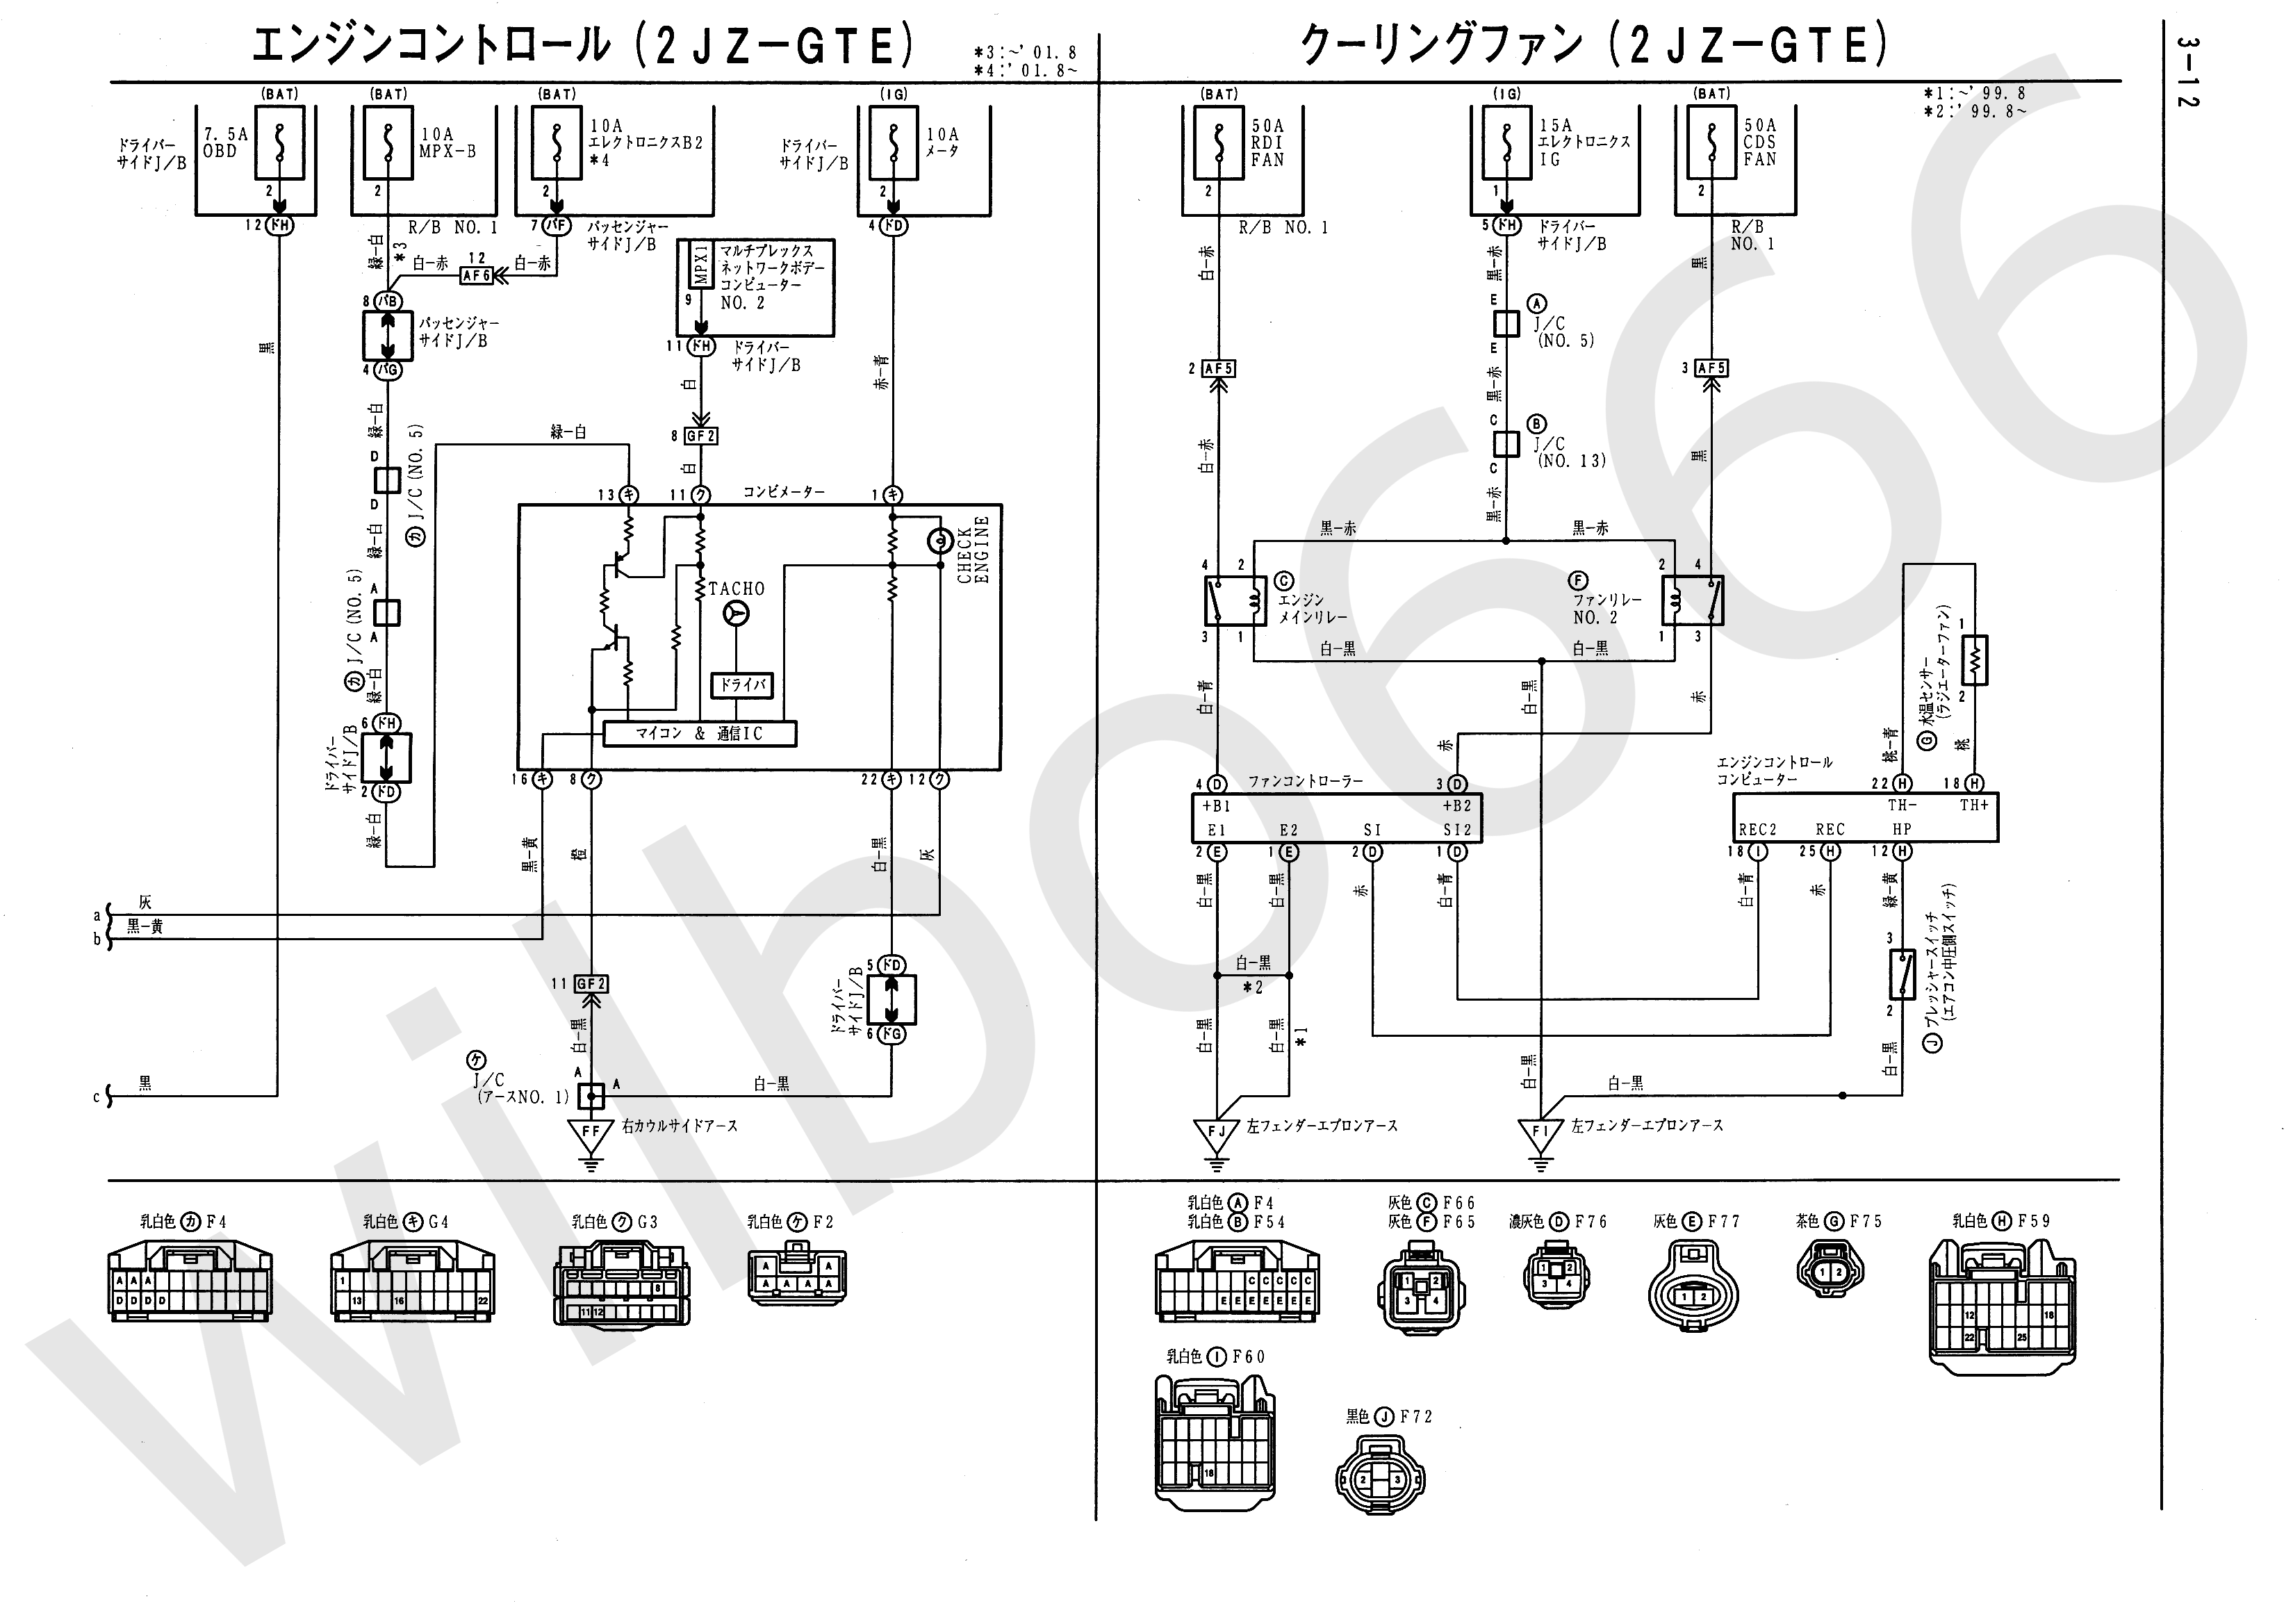 JZS161 Electrical Wiring Diagram 6748505 3 12 wilbo666 2jz gte vvti jzs161 aristo engine wiring 2jzgte wiring diagram at mifinder.co